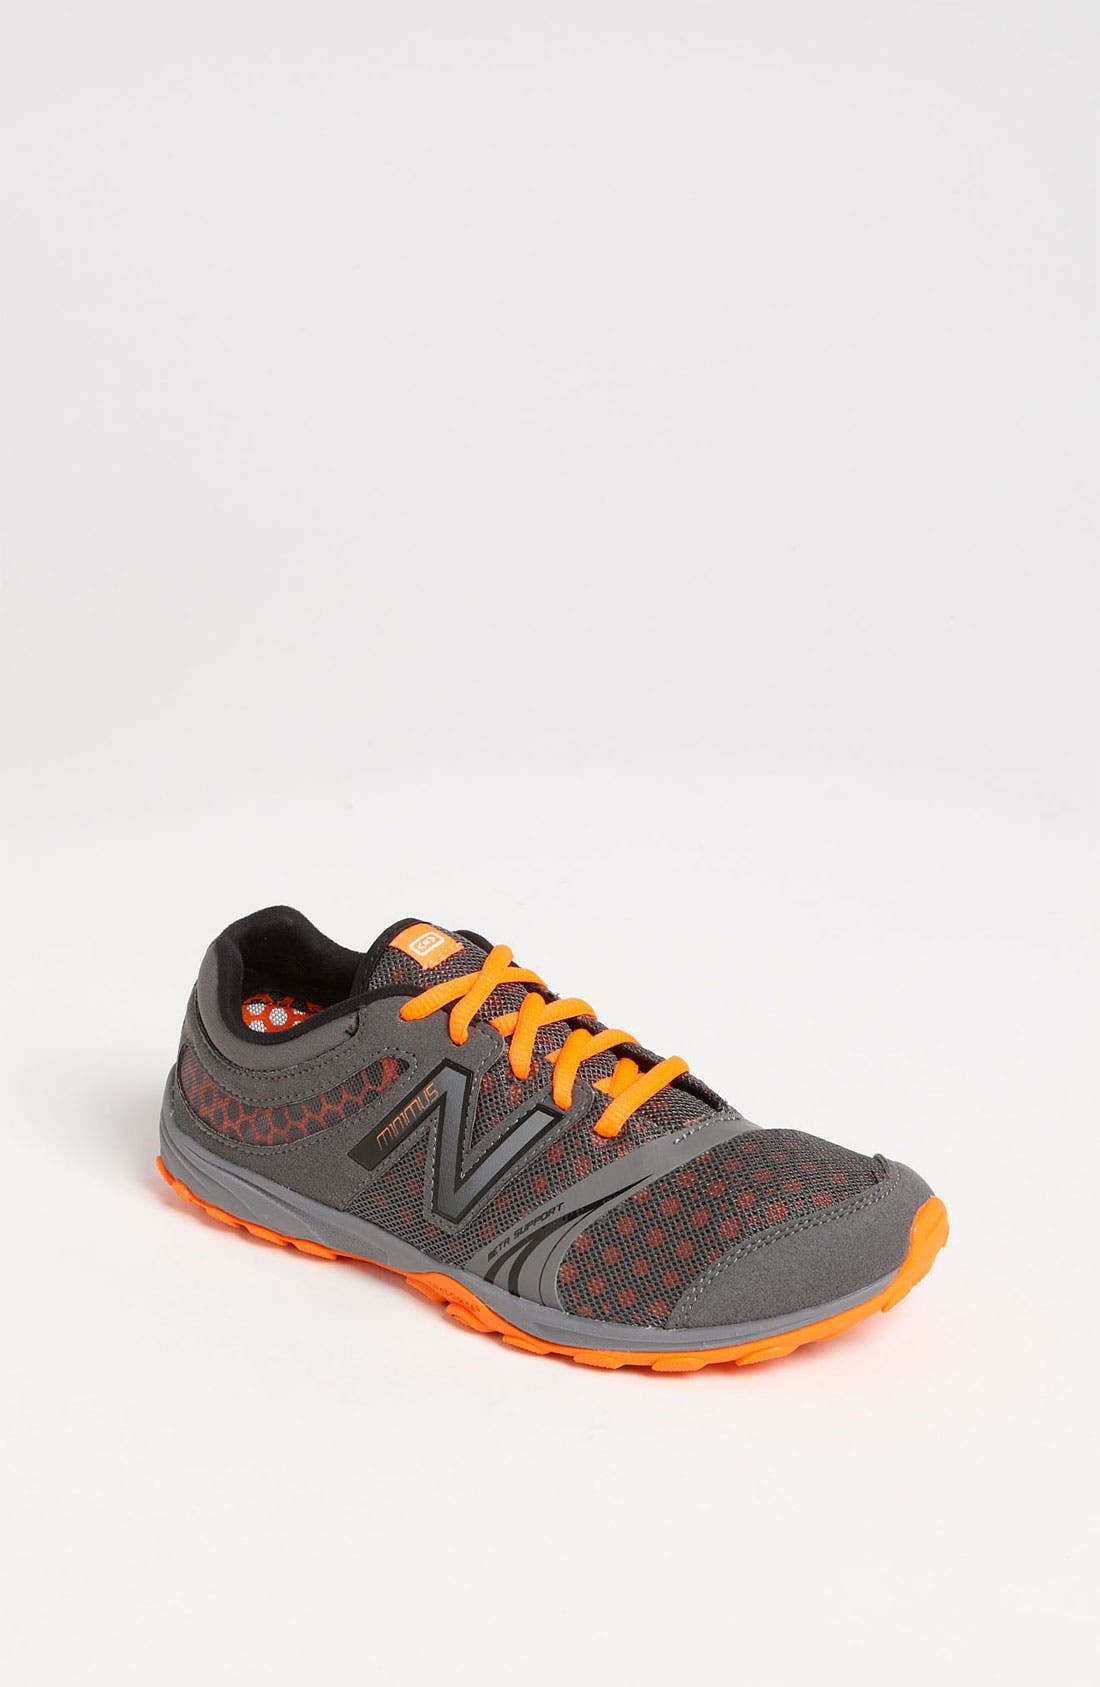 Main Image - New Balance 'Takedown 20V3' Running Shoe (Toddler, Little Kid & Big Kid)